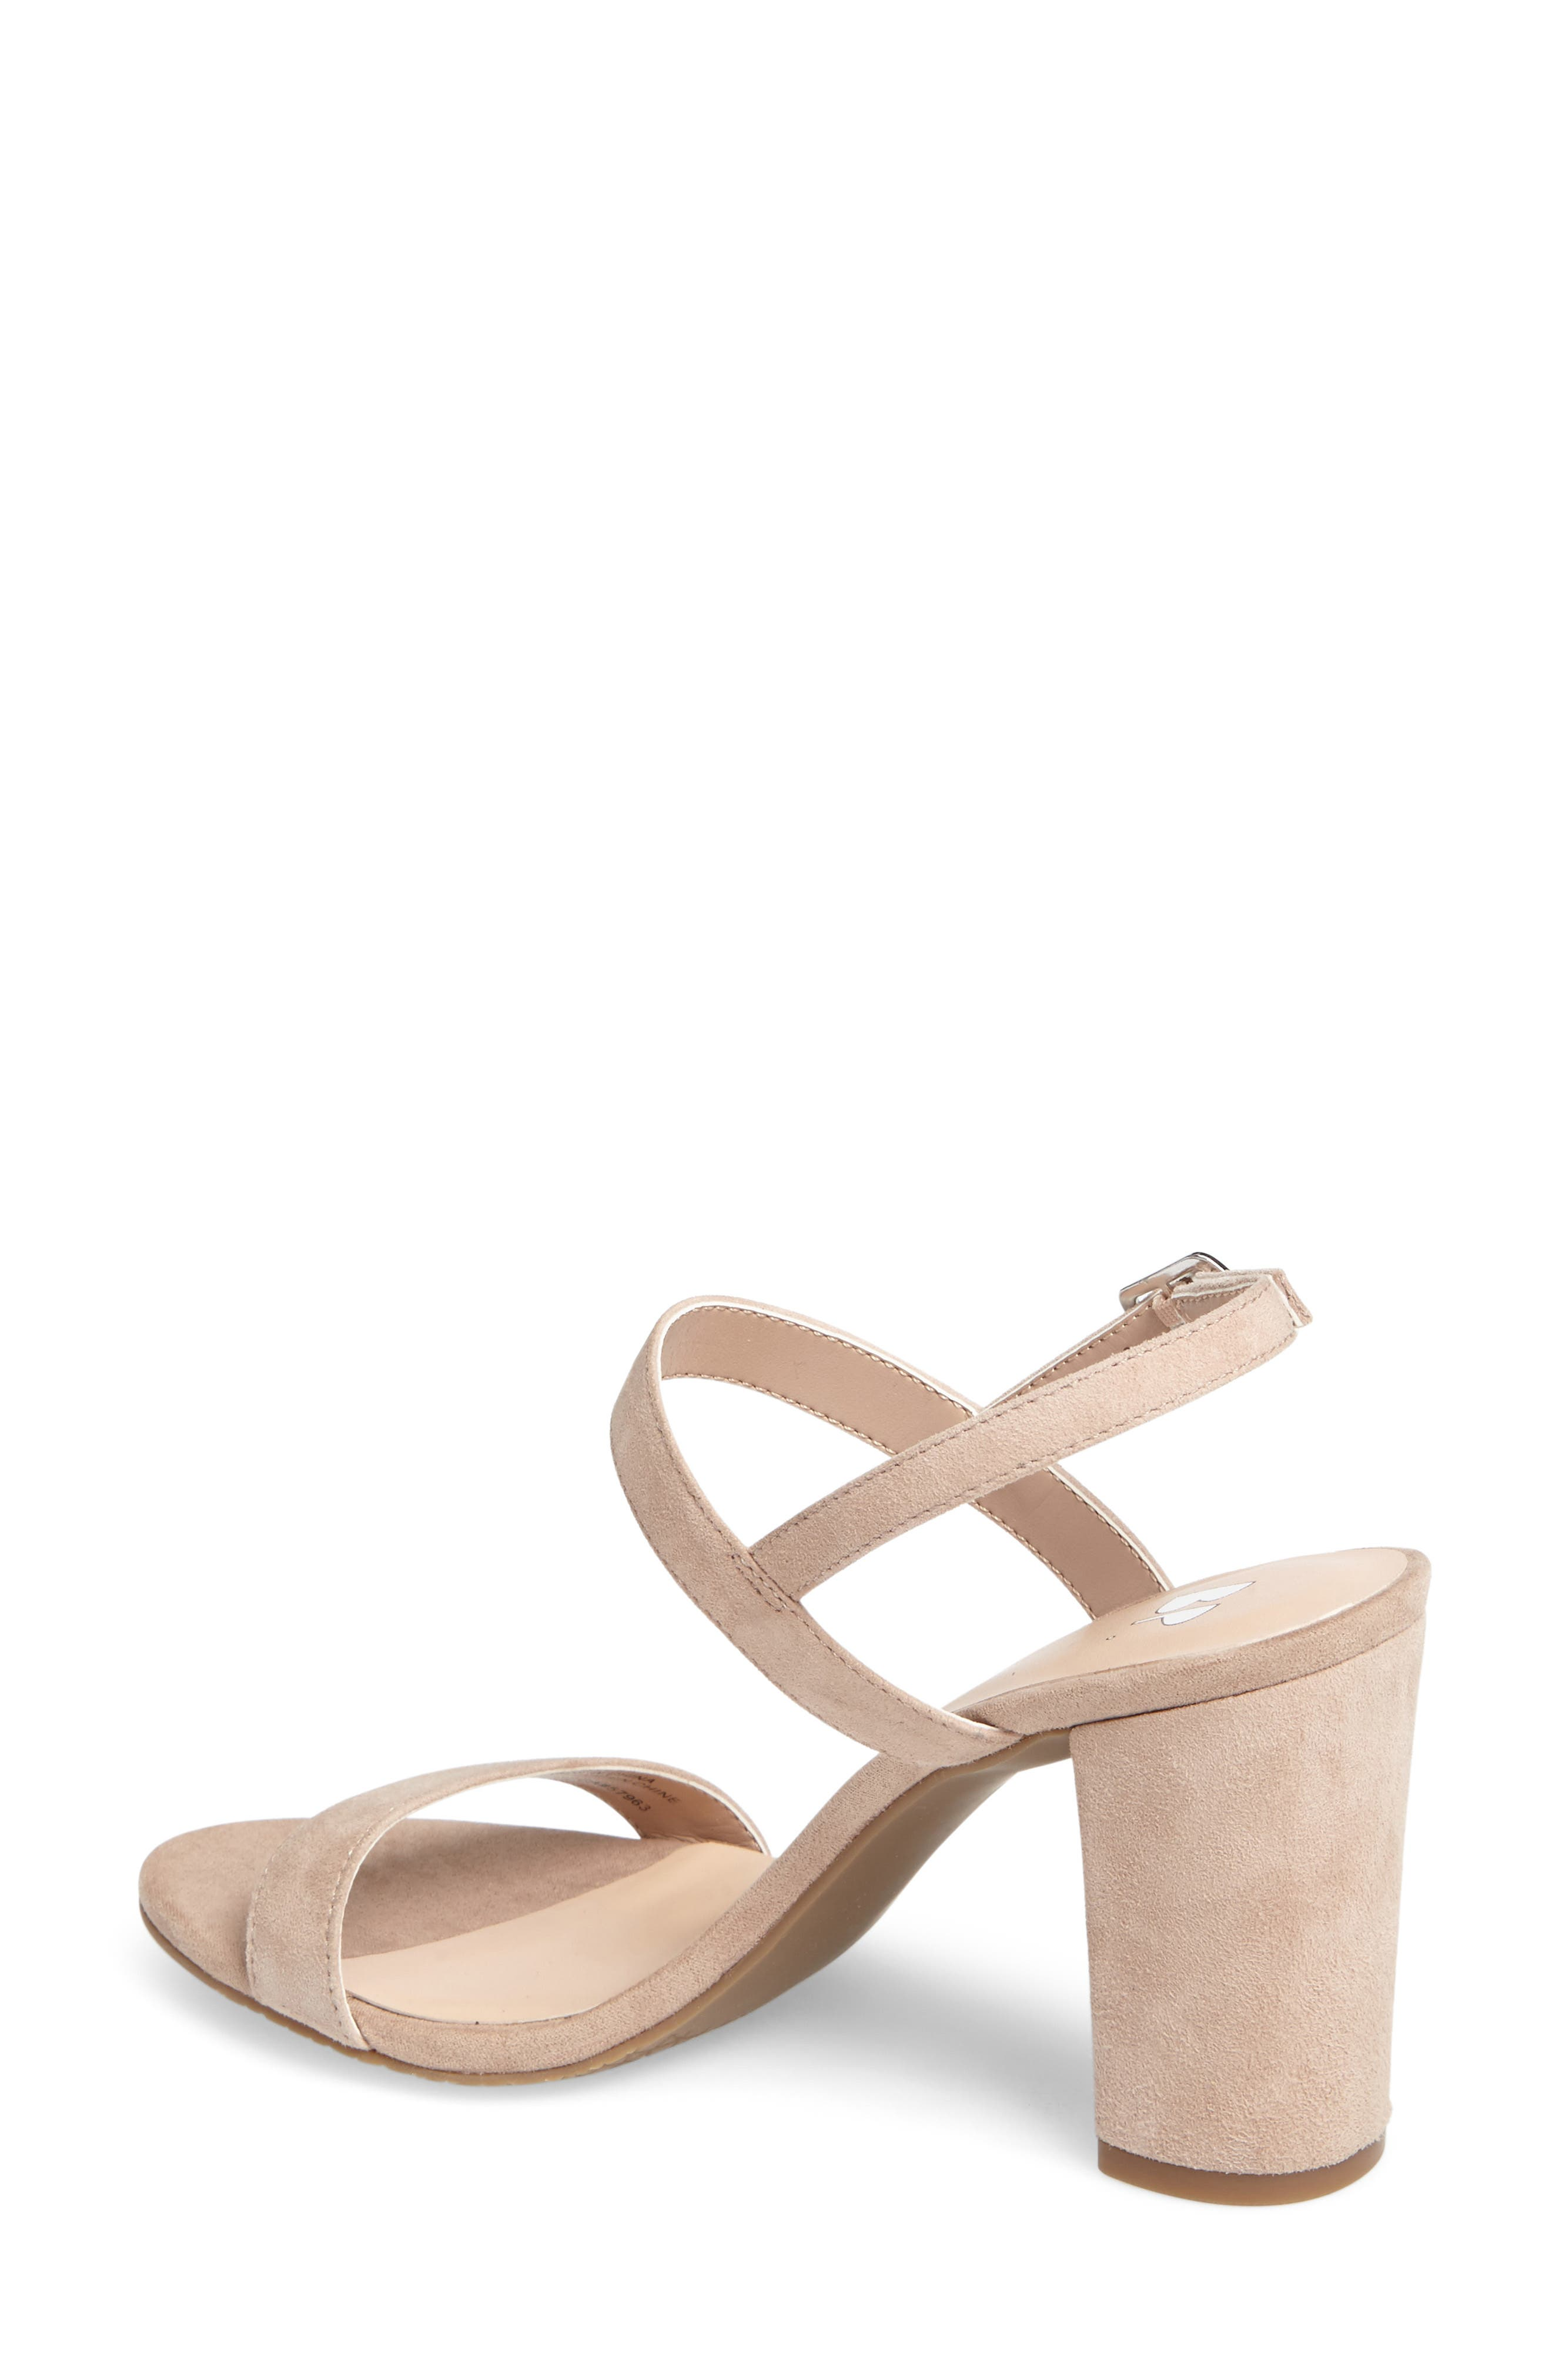 Lula Block Heel Slingback Sandal,                             Alternate thumbnail 2, color,                             BLUSH SUEDE